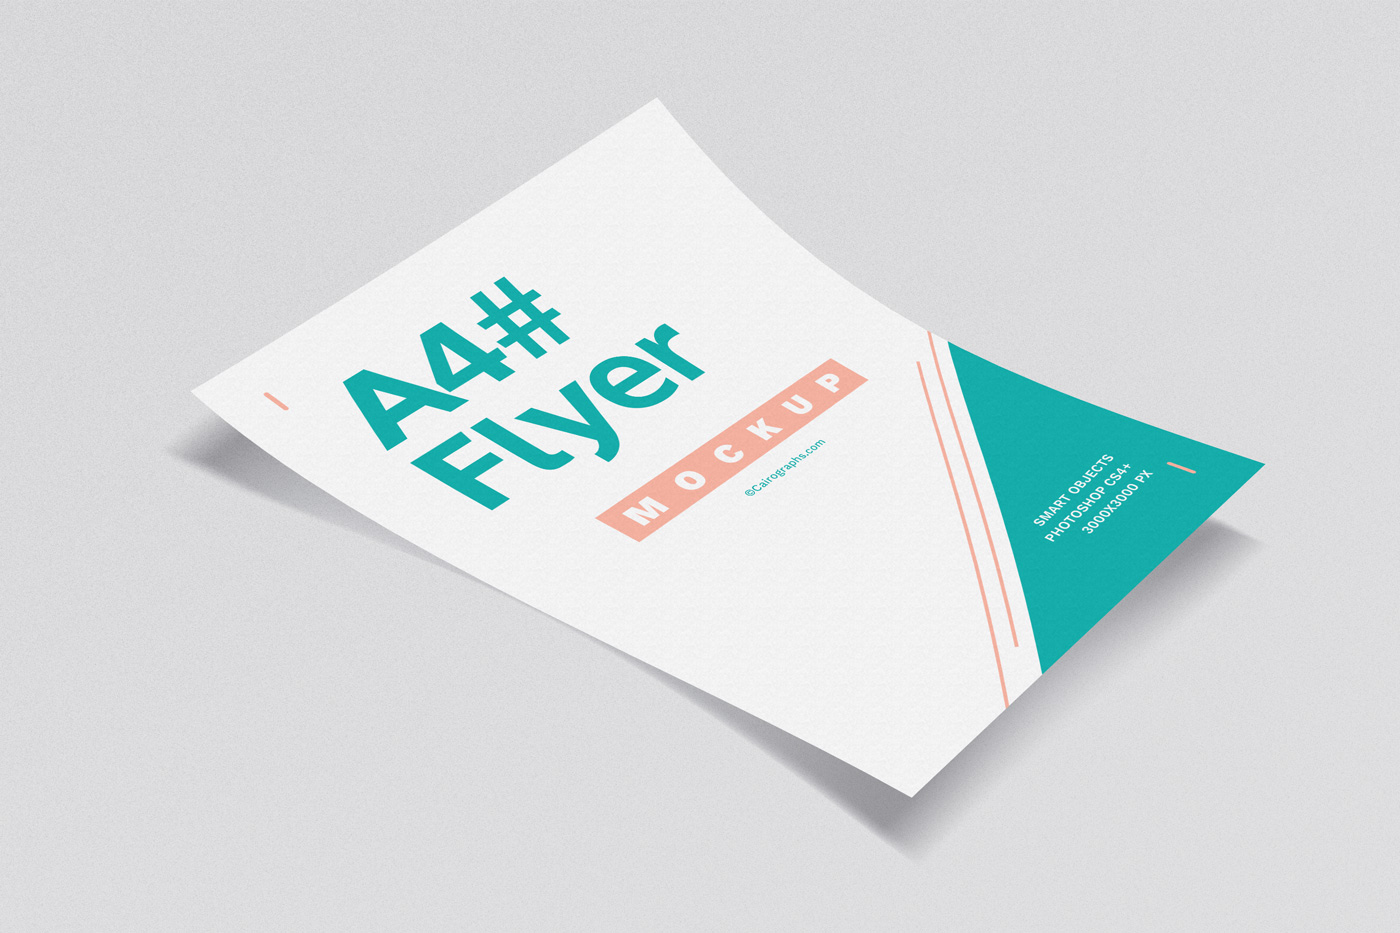 Posters & Flyers Mockups Vol.2 example image 8